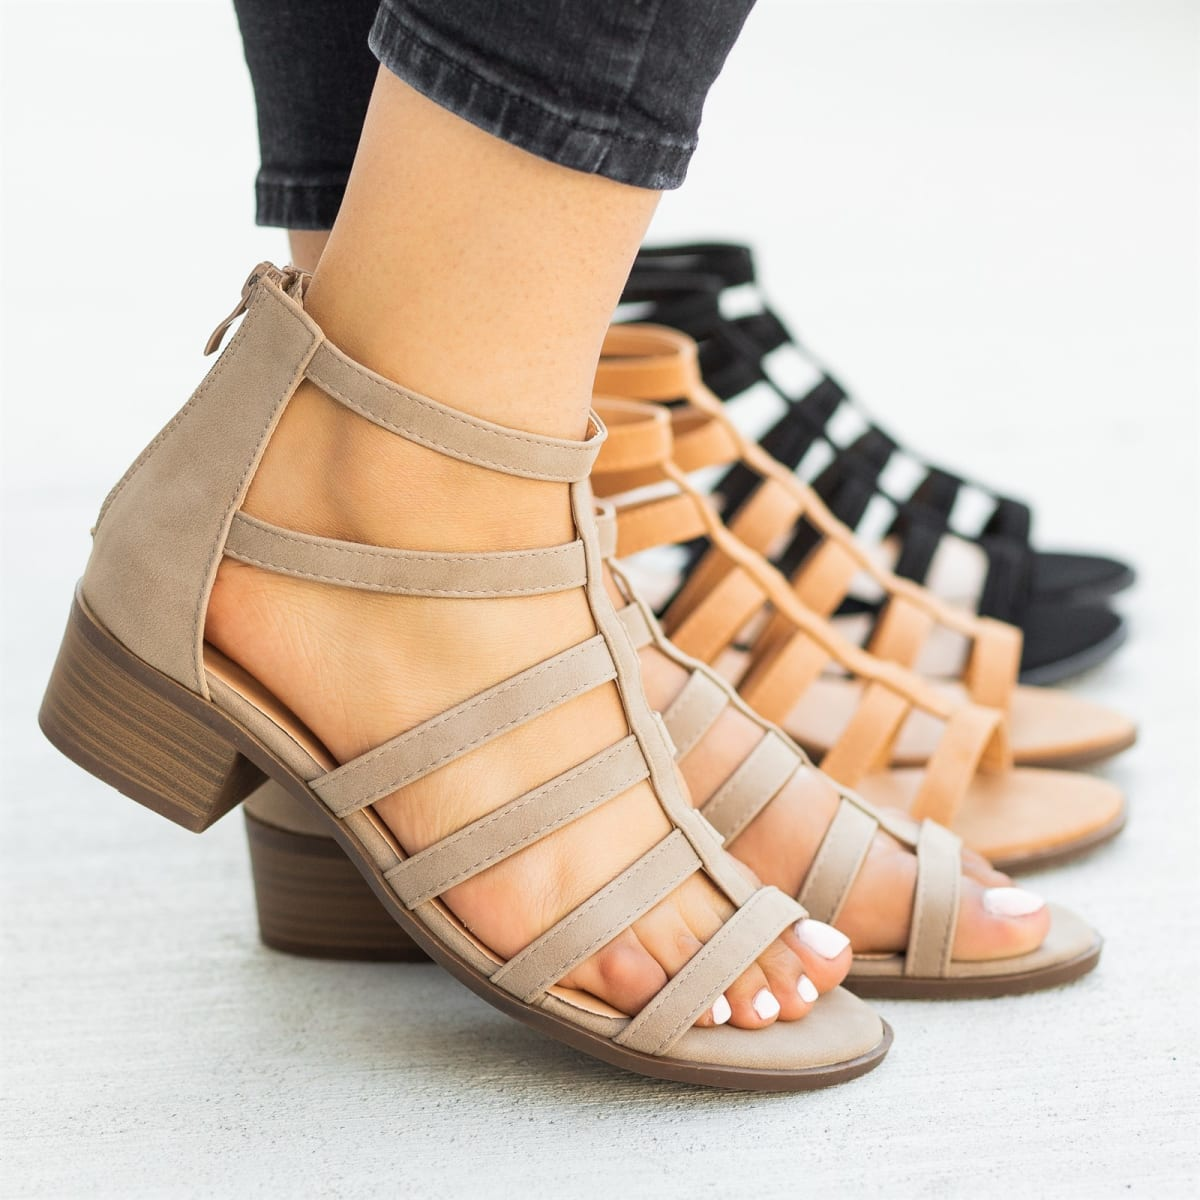 Heel I Low Caged Sandals 3Colors 8n0wkOPX